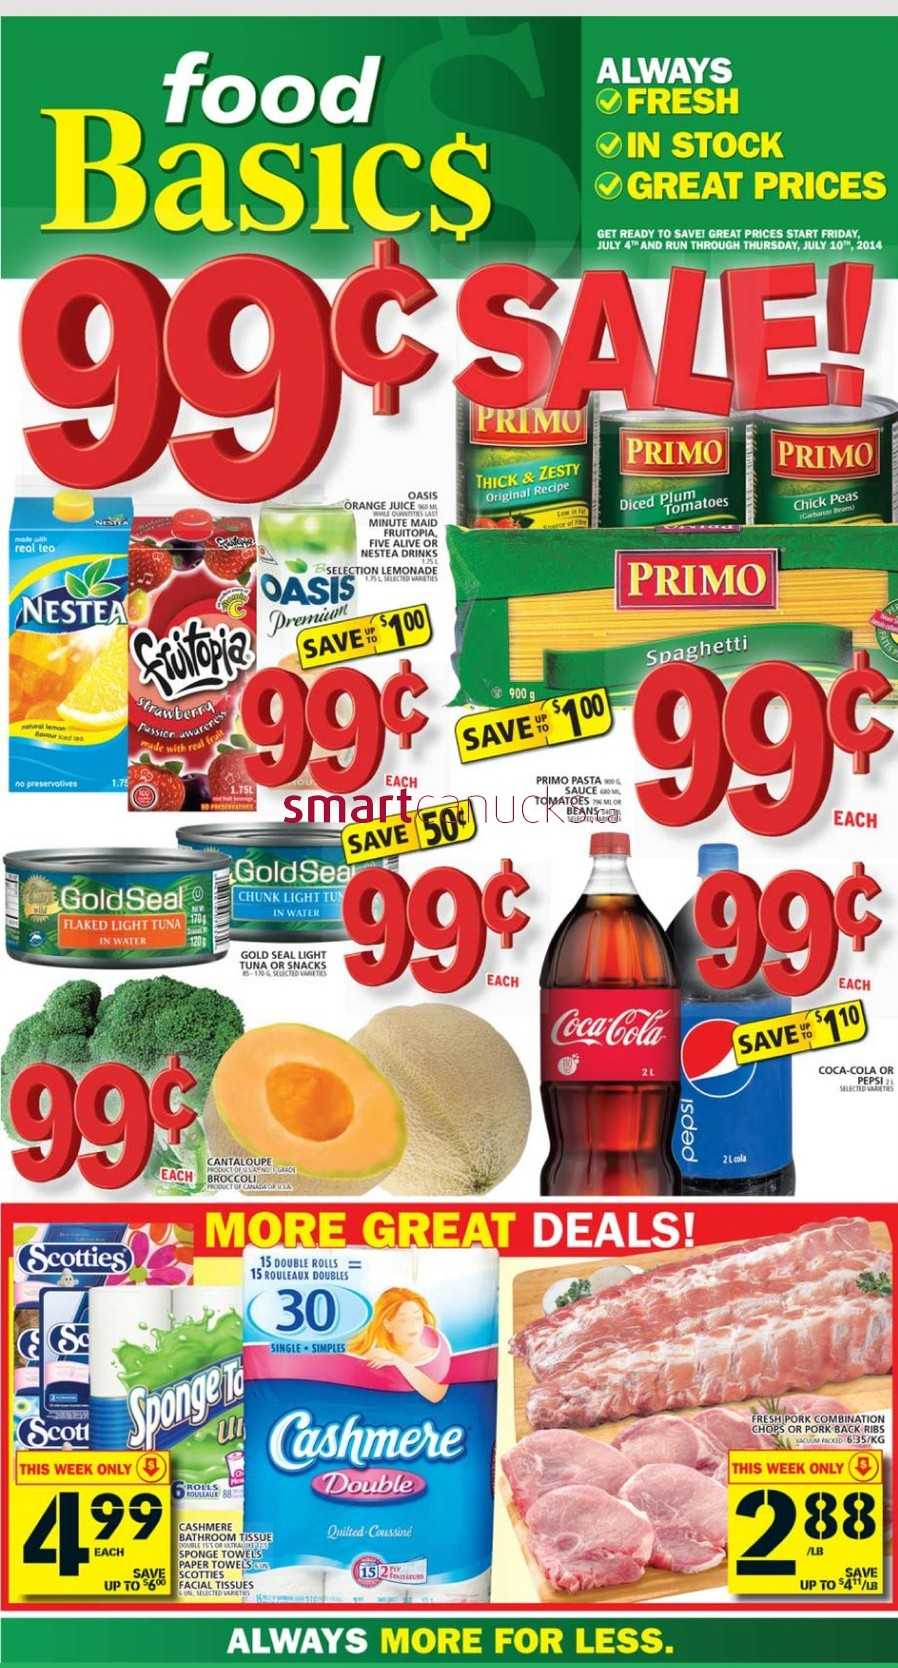 Food Basics Kitchener On